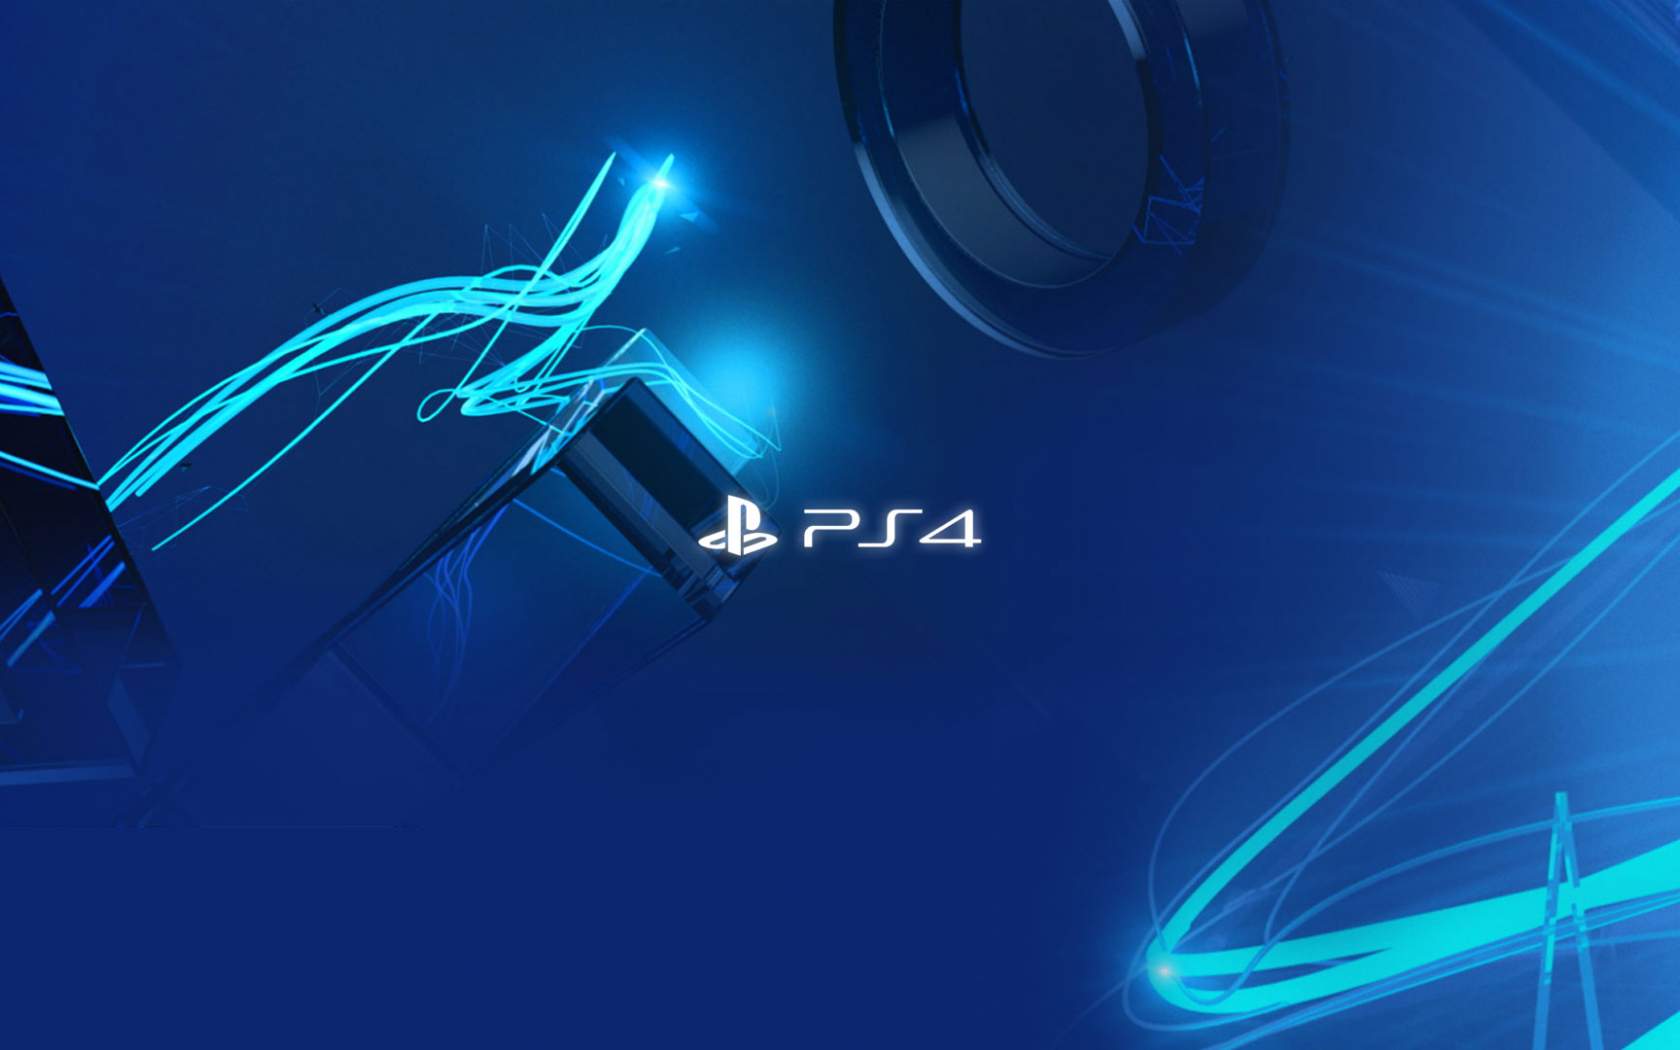 Free Download Ps4 Wallpapers Playstation 4 Wallpapers Hd